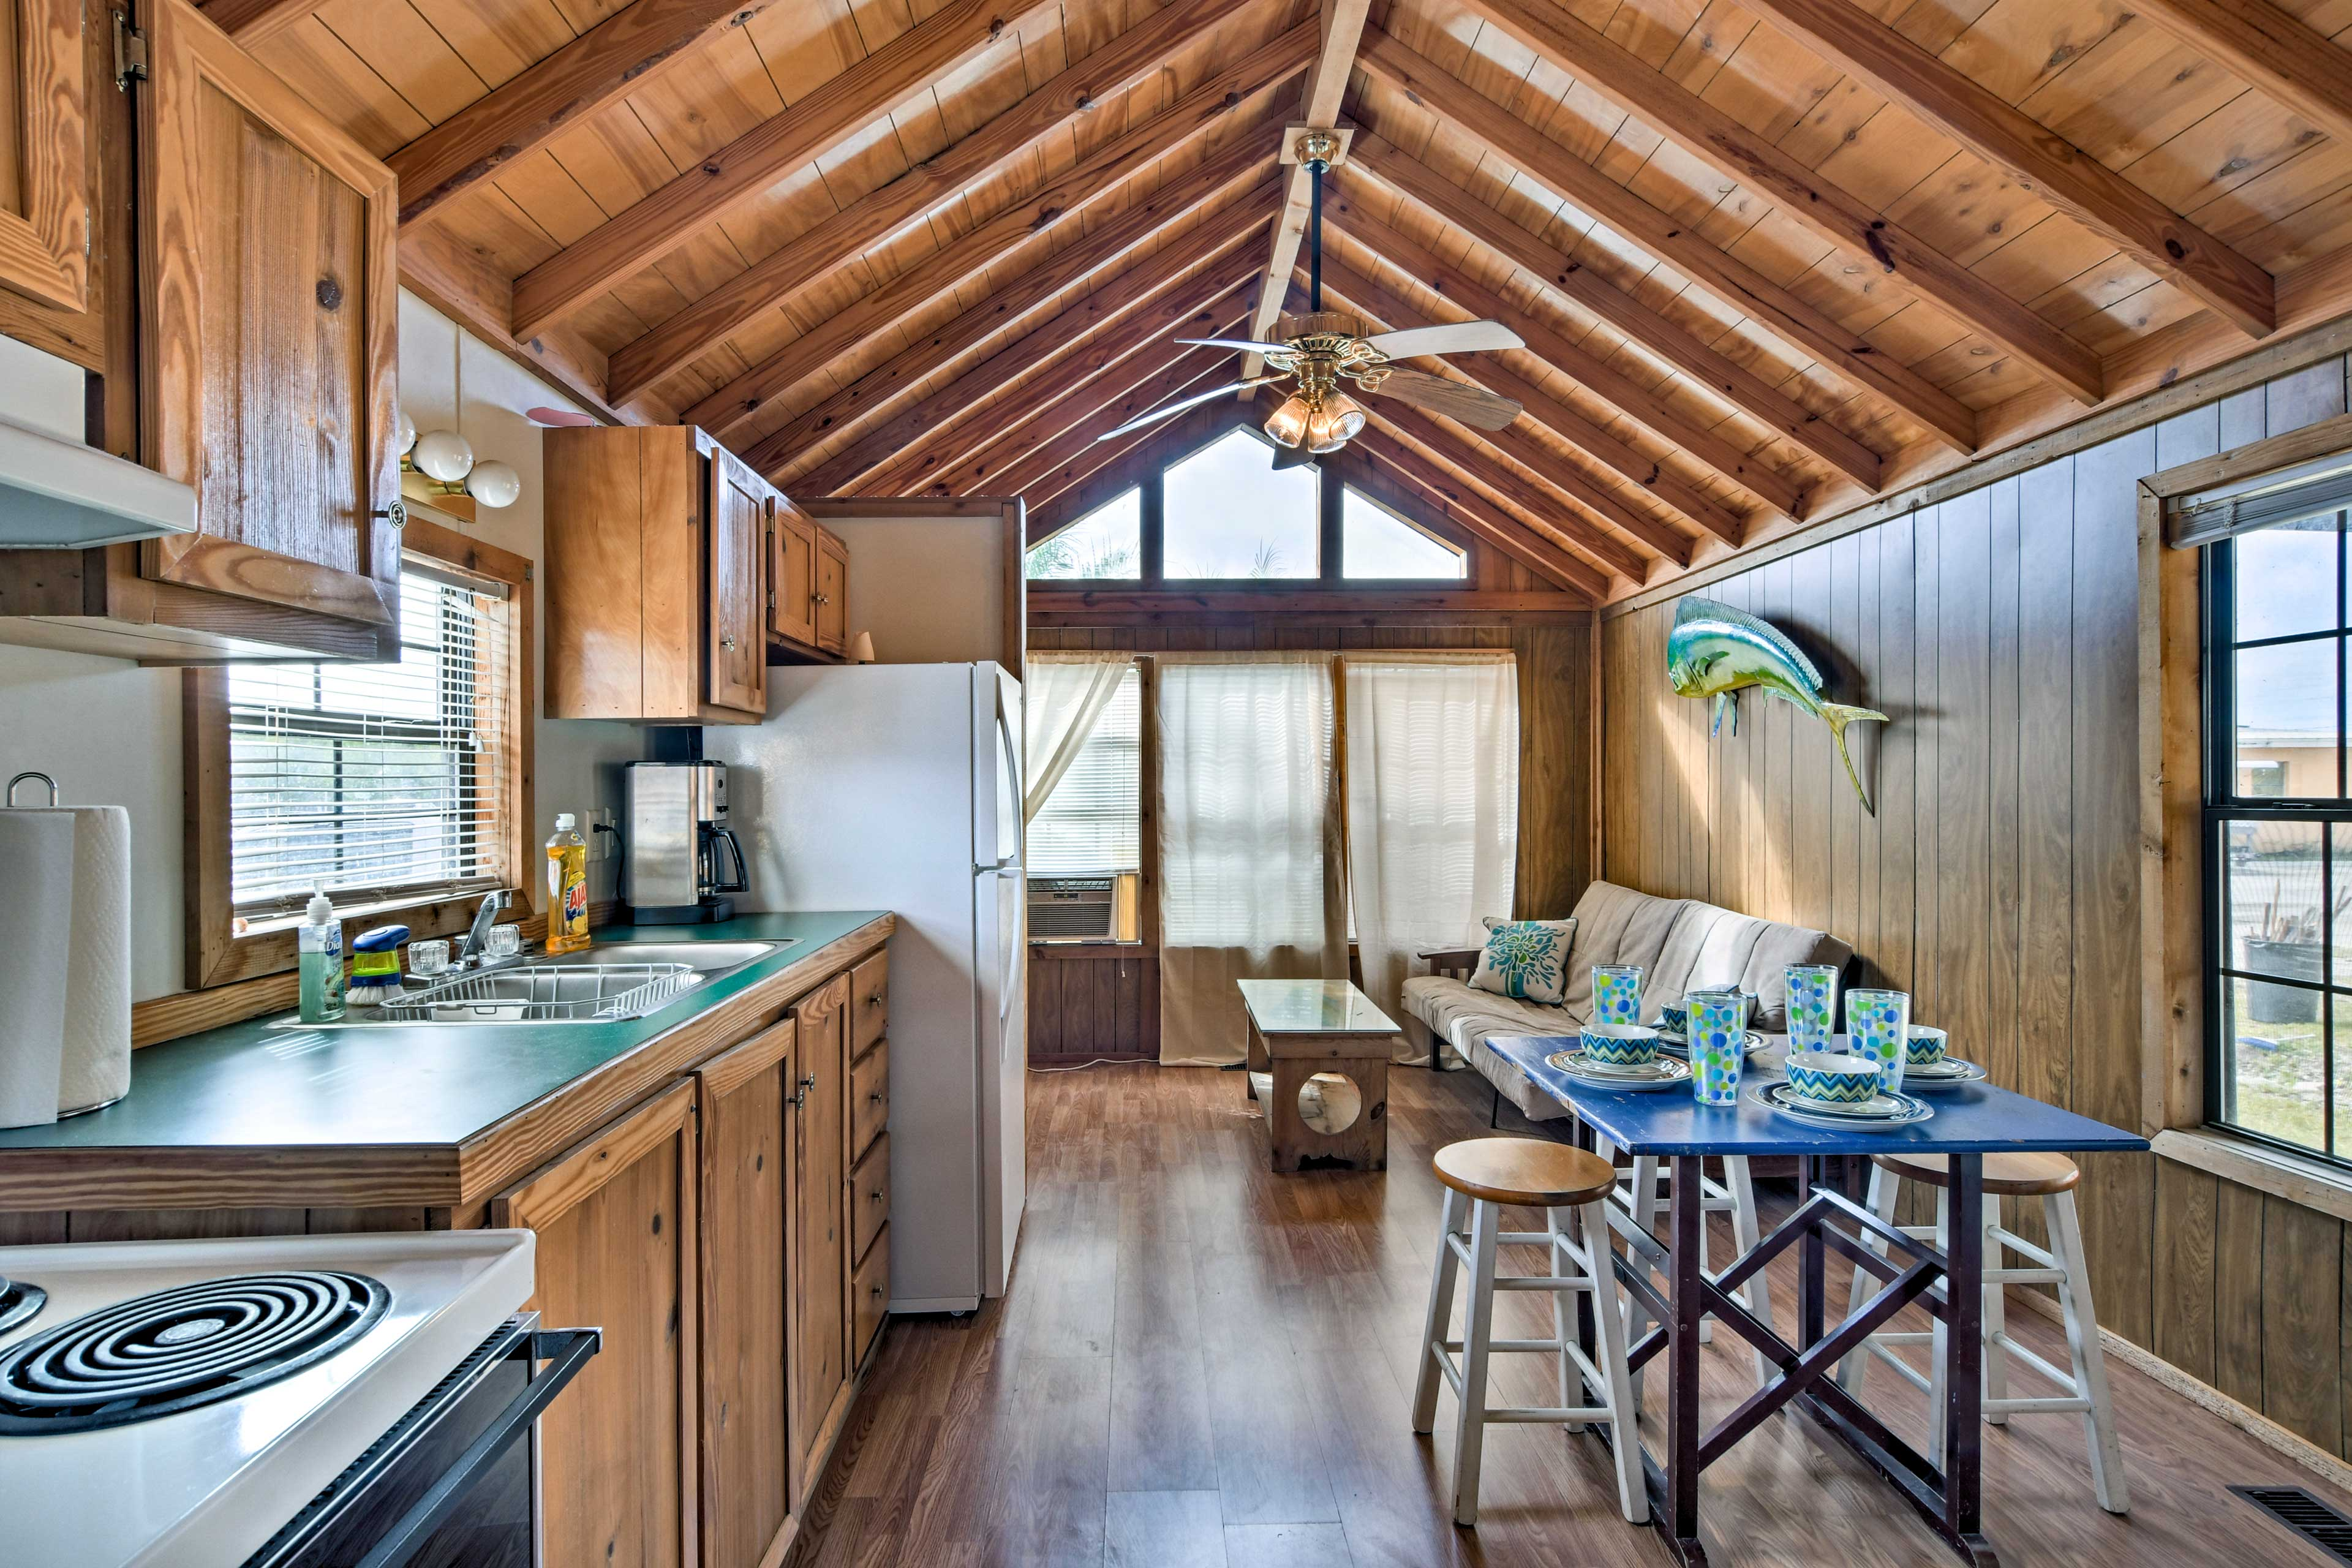 Vaulted ceilings and a wall lined with windows give this quaint cabin an open and spacious feel.